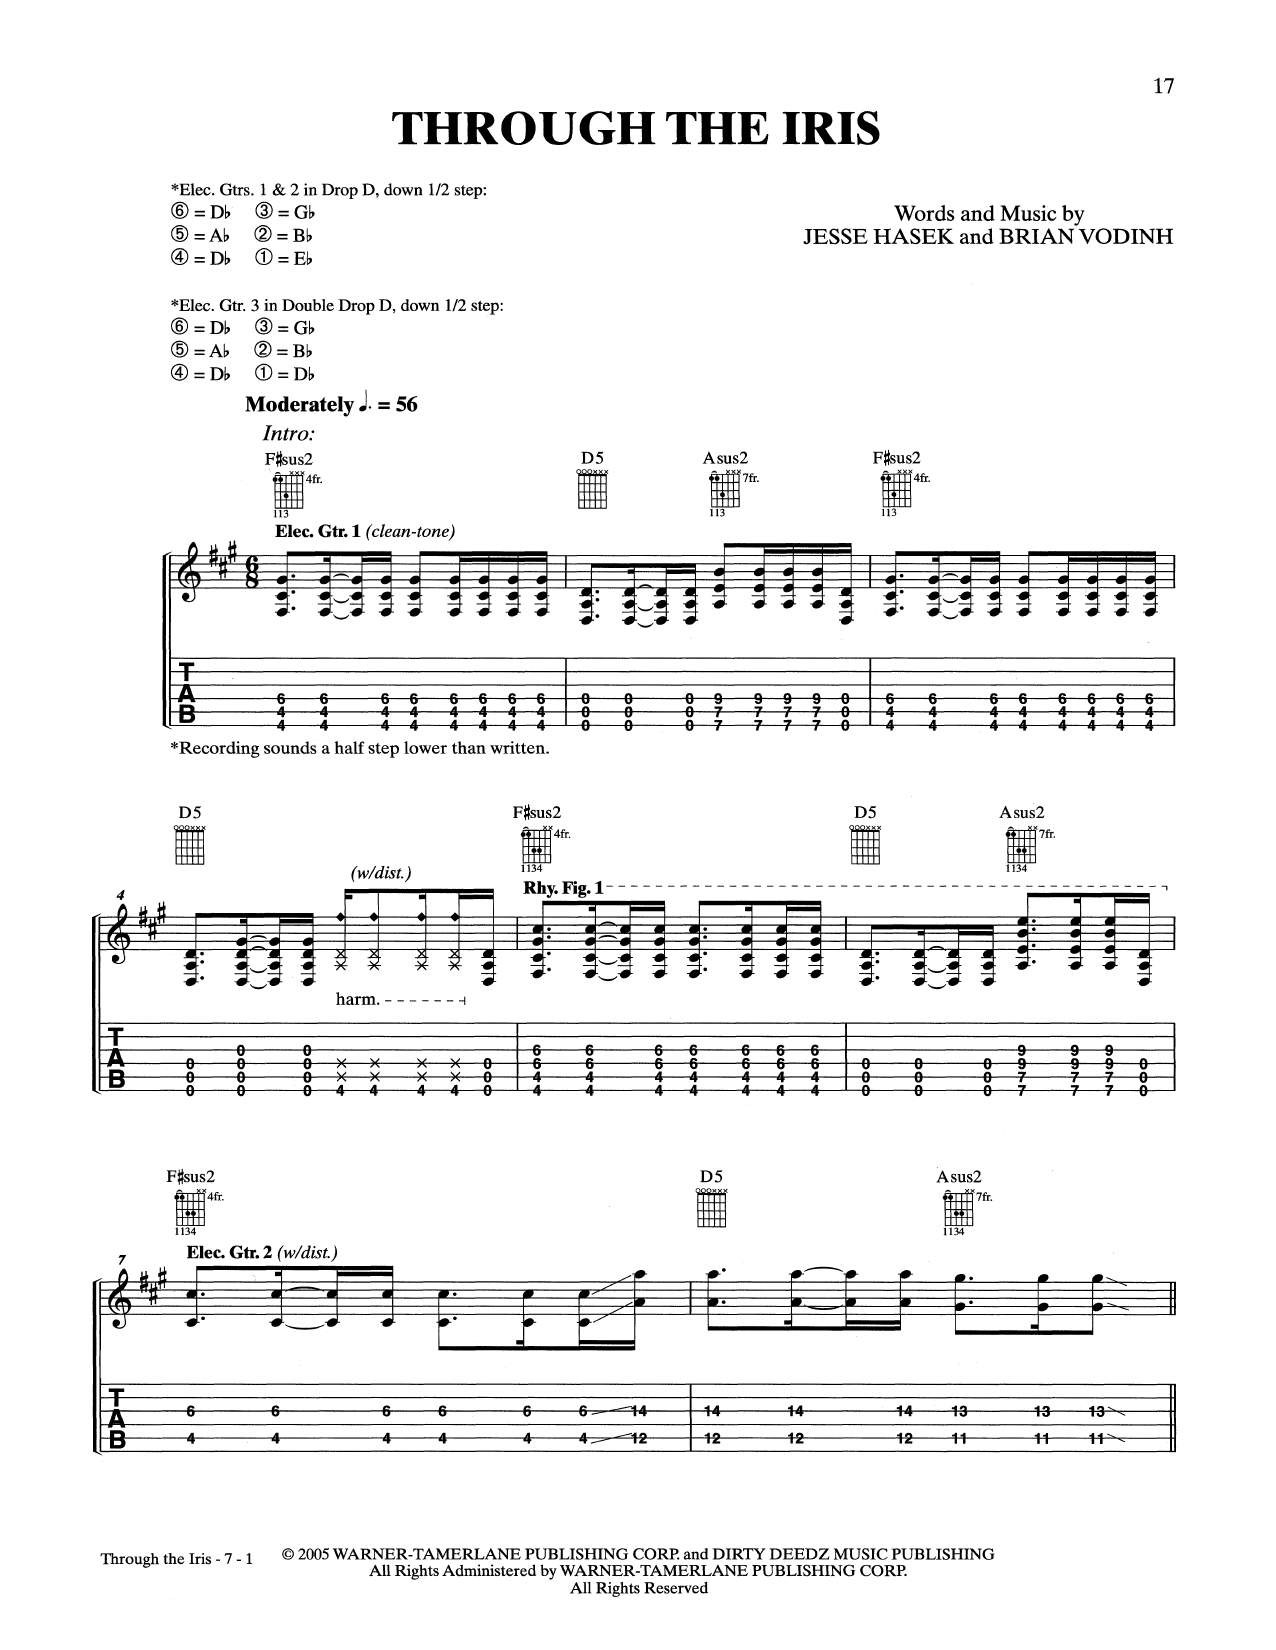 10 Years Through The Iris sheet music notes and chords